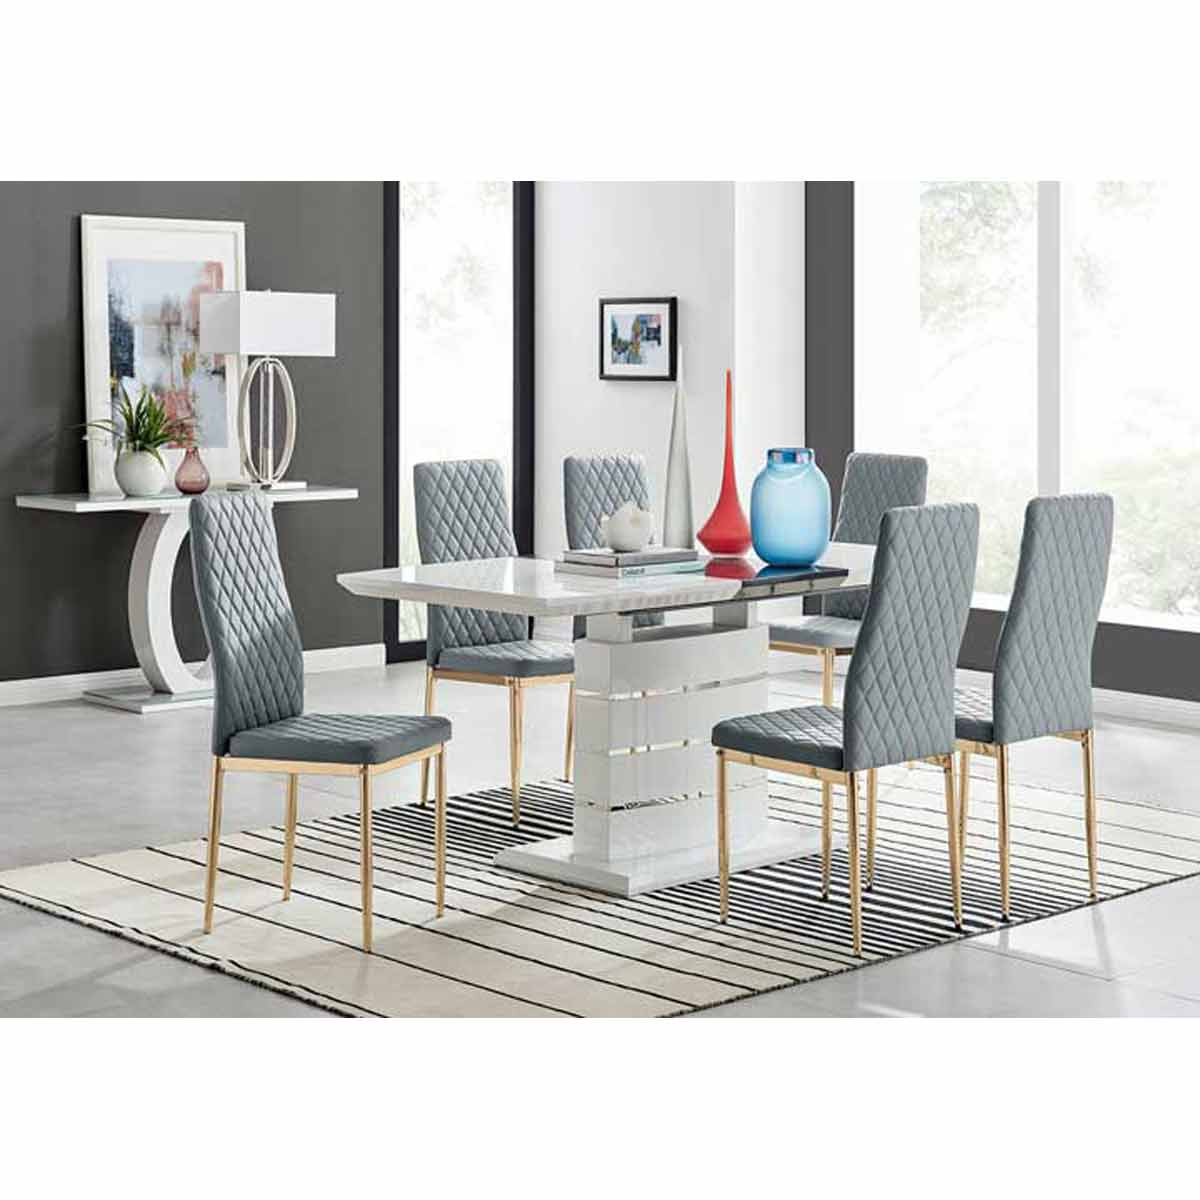 Furniture Box Renato 120cm High Gloss Extending Dining Table and 6 Grey Gold Leg Milan Chairs